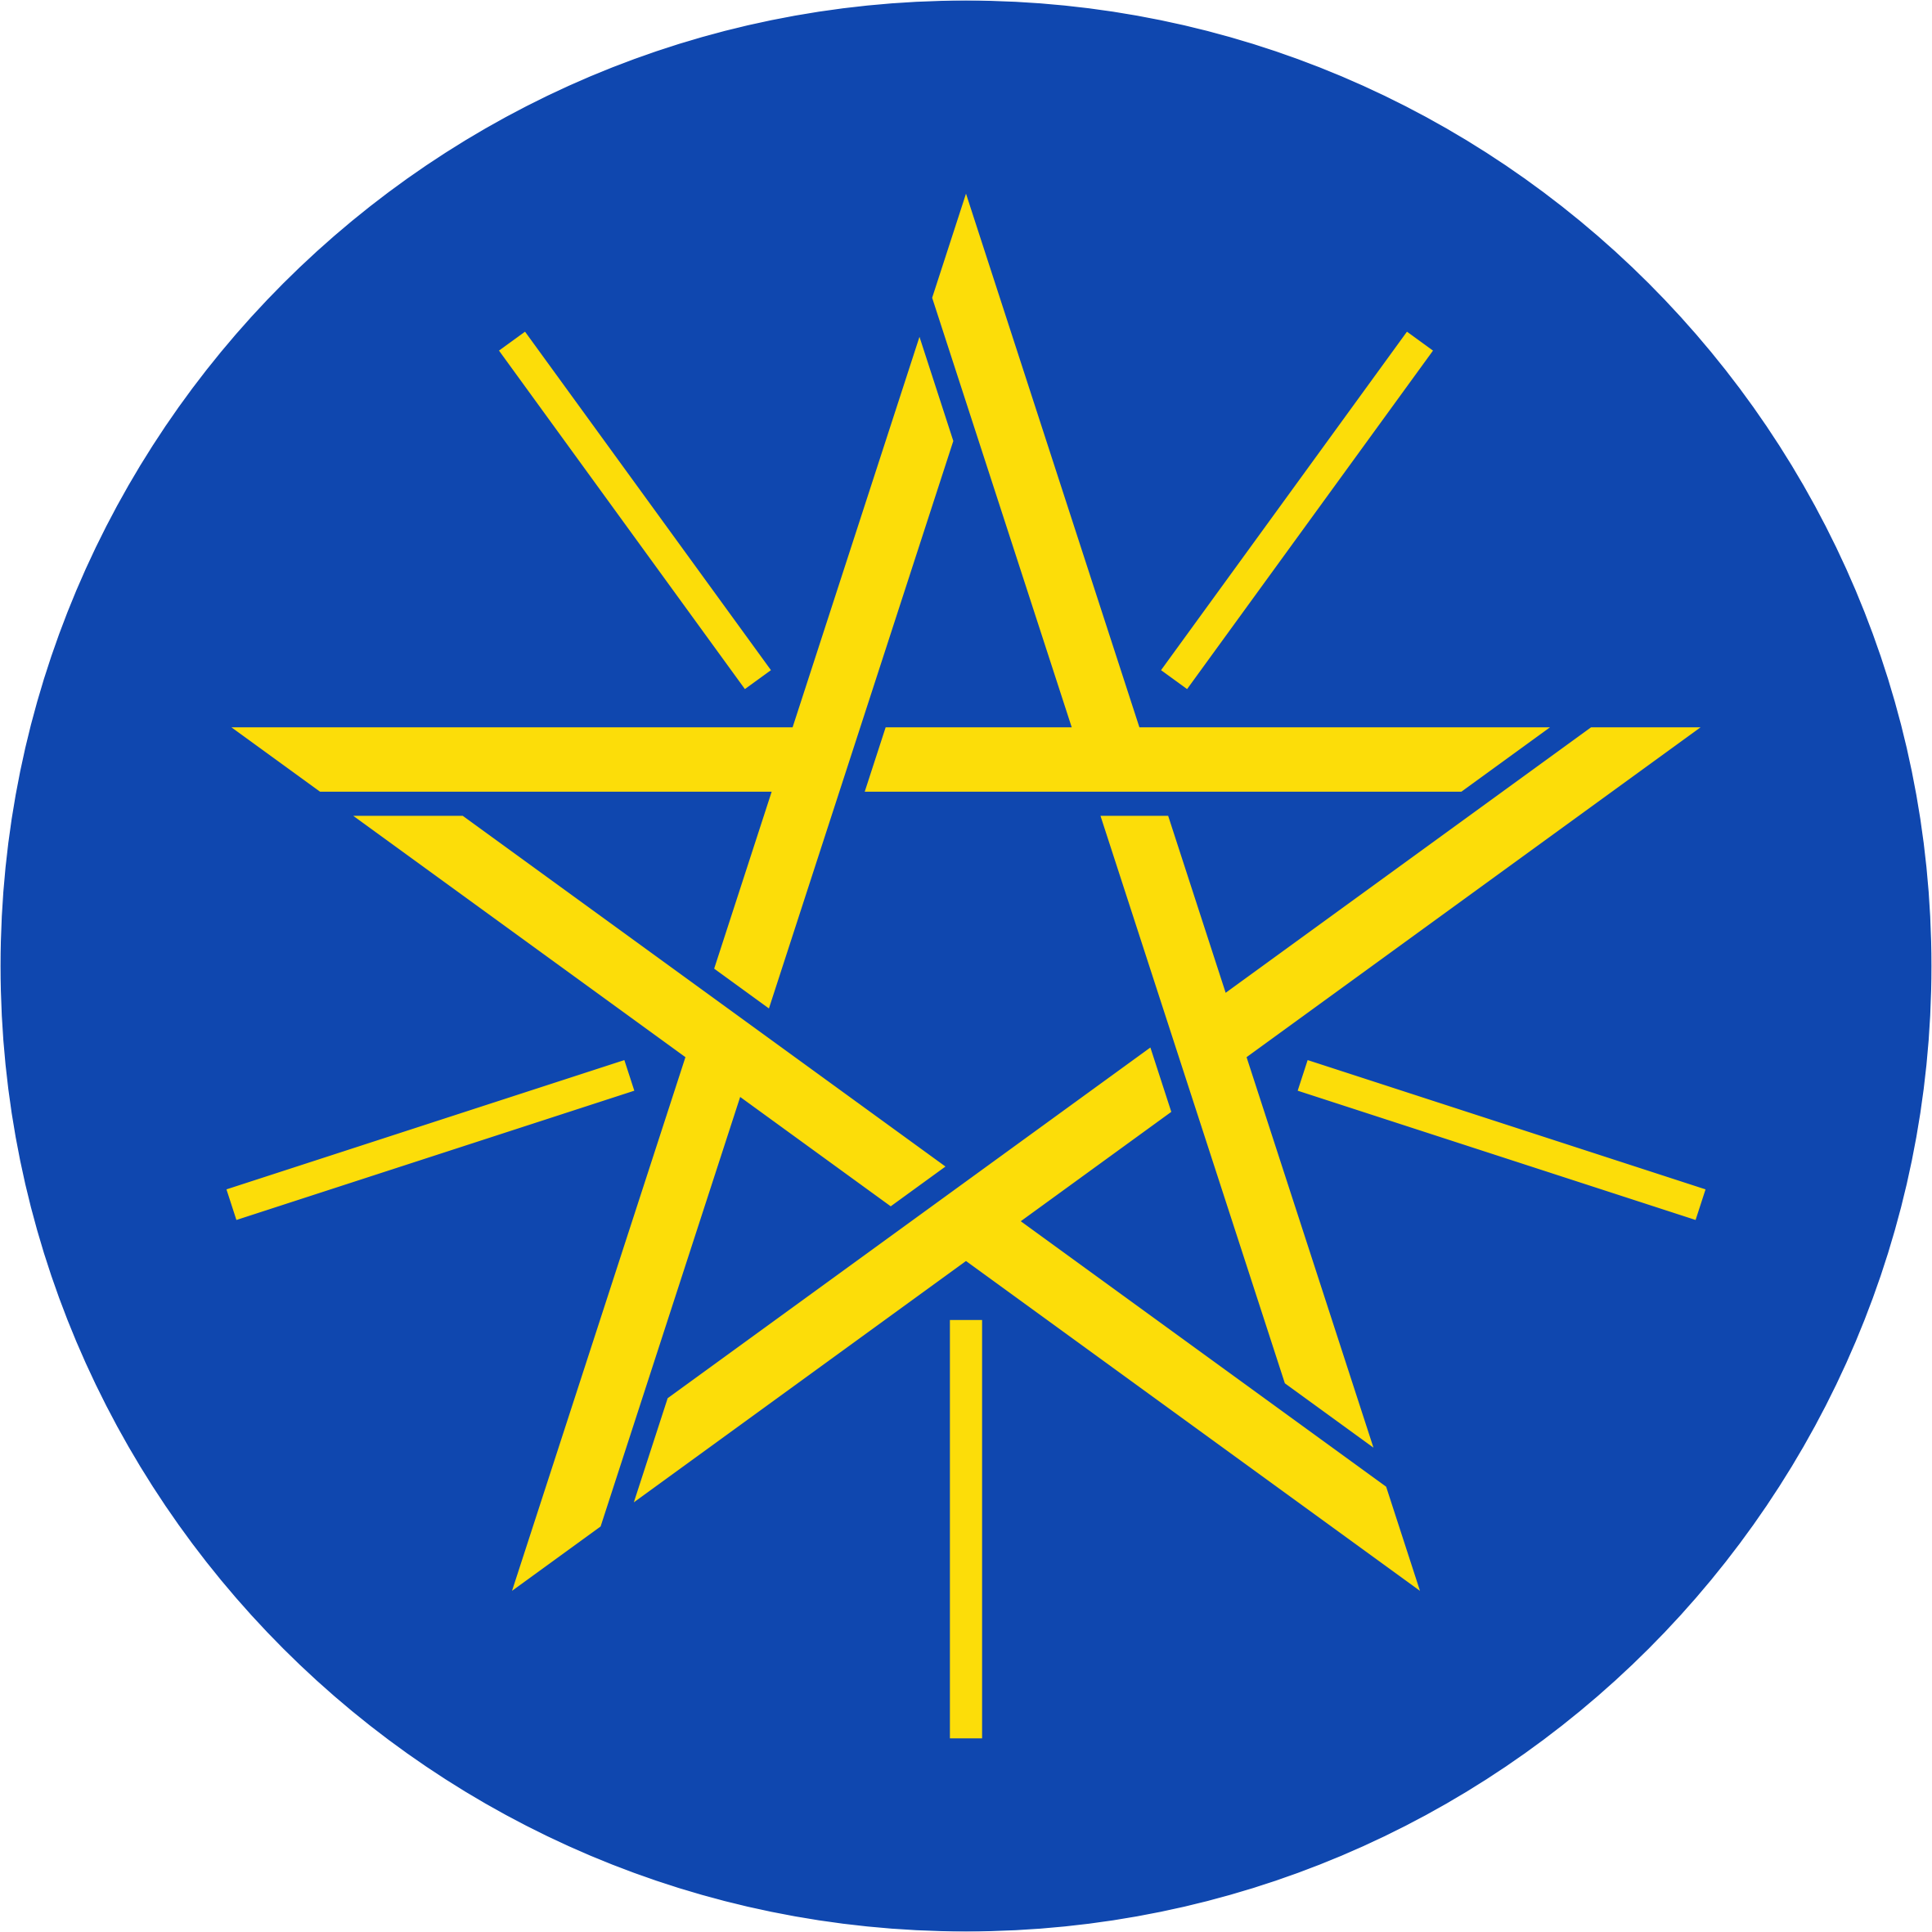 The Ethiopia Emblem by AdamStanislav